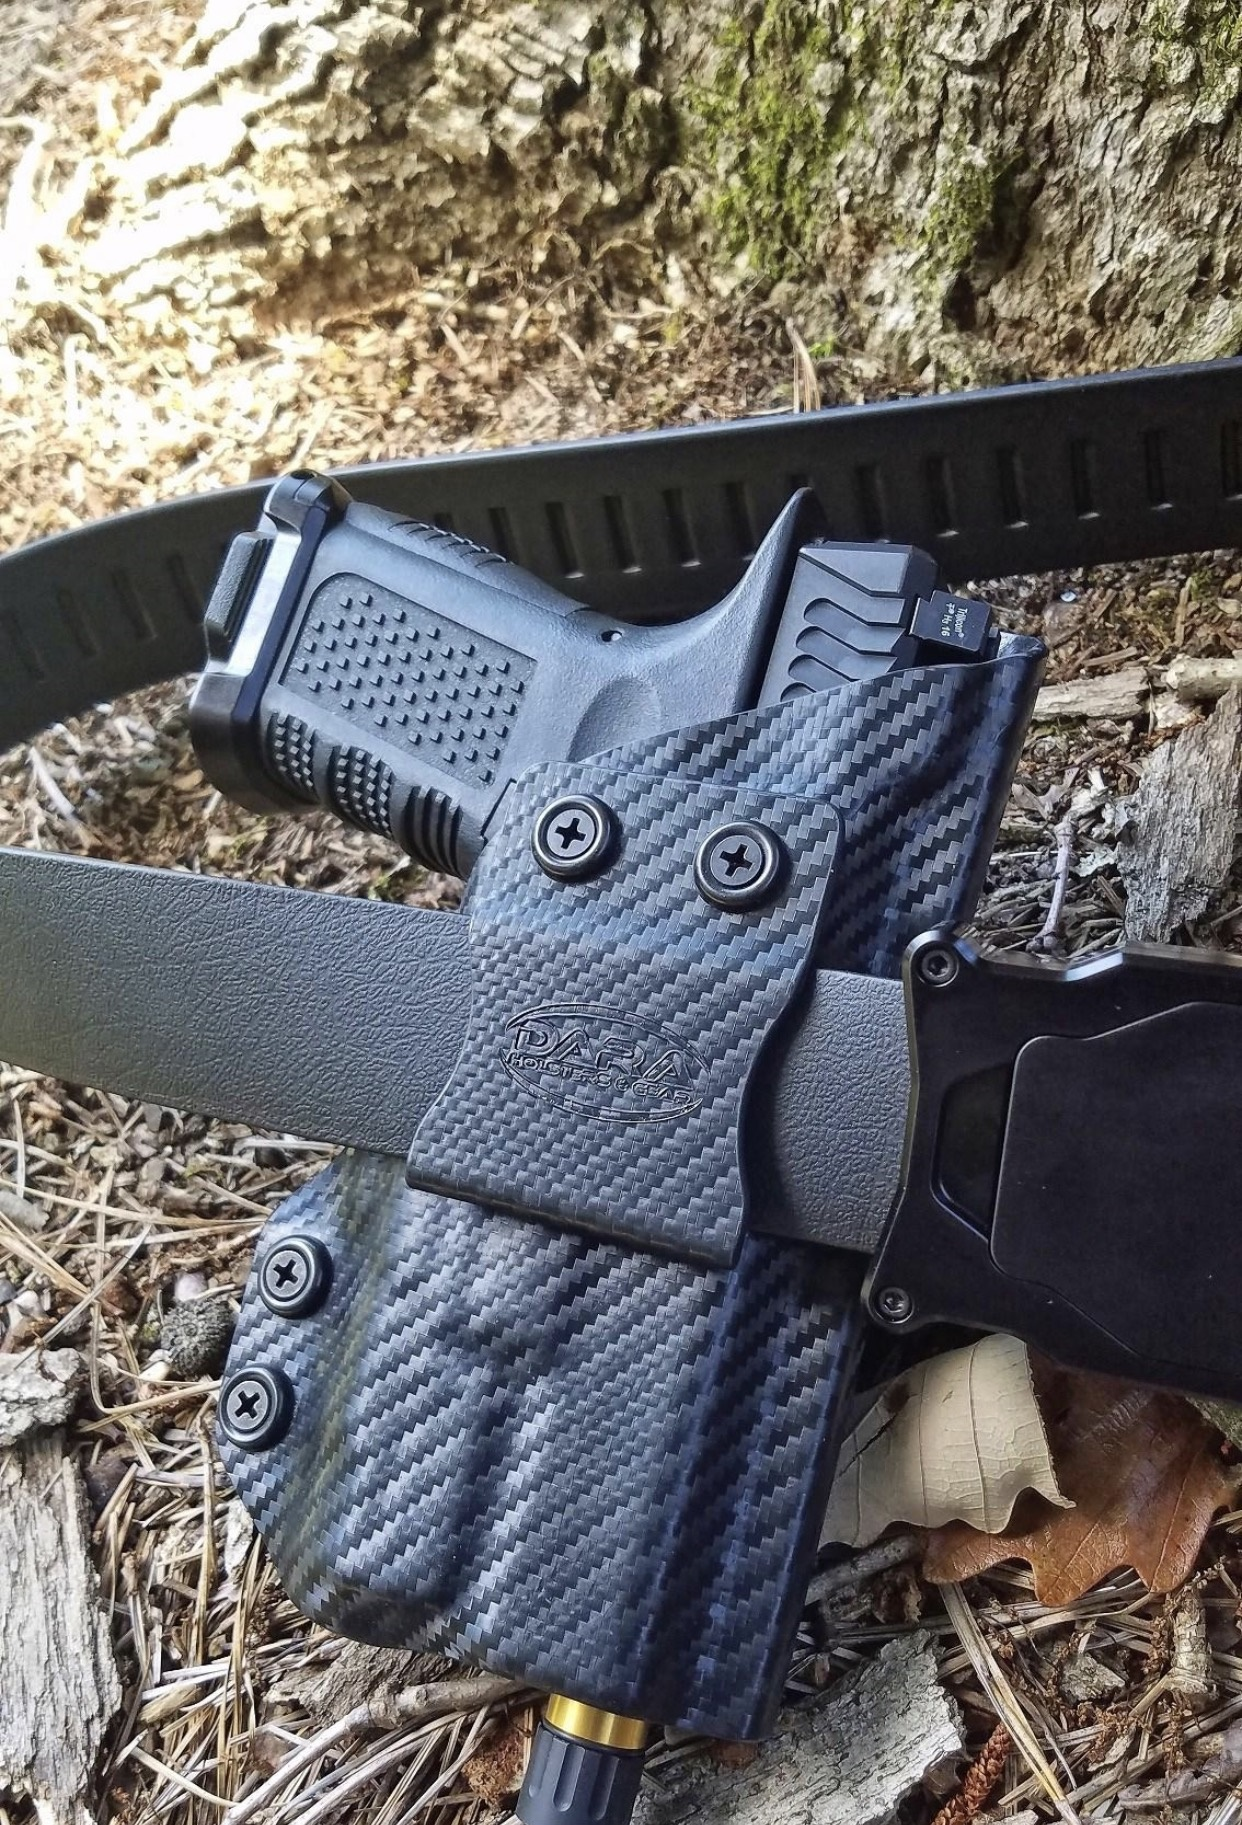 Glock 19 Holsters, IWB Holsters, OWB Holster for glock 19